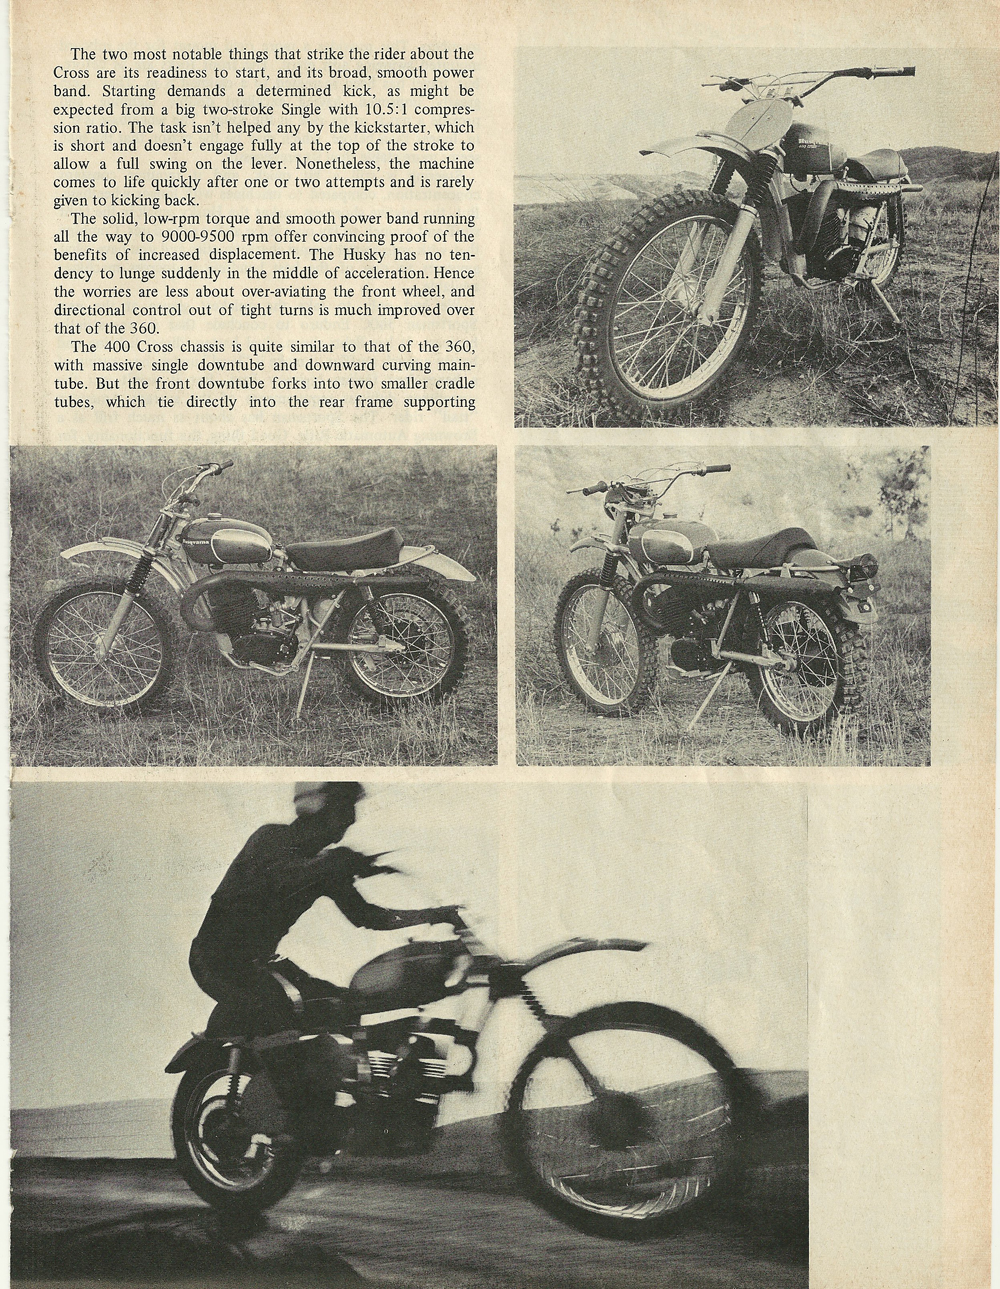 1969 Husqvarna 400 Cross and Sportsman 360C Enduro road test 4.jpg